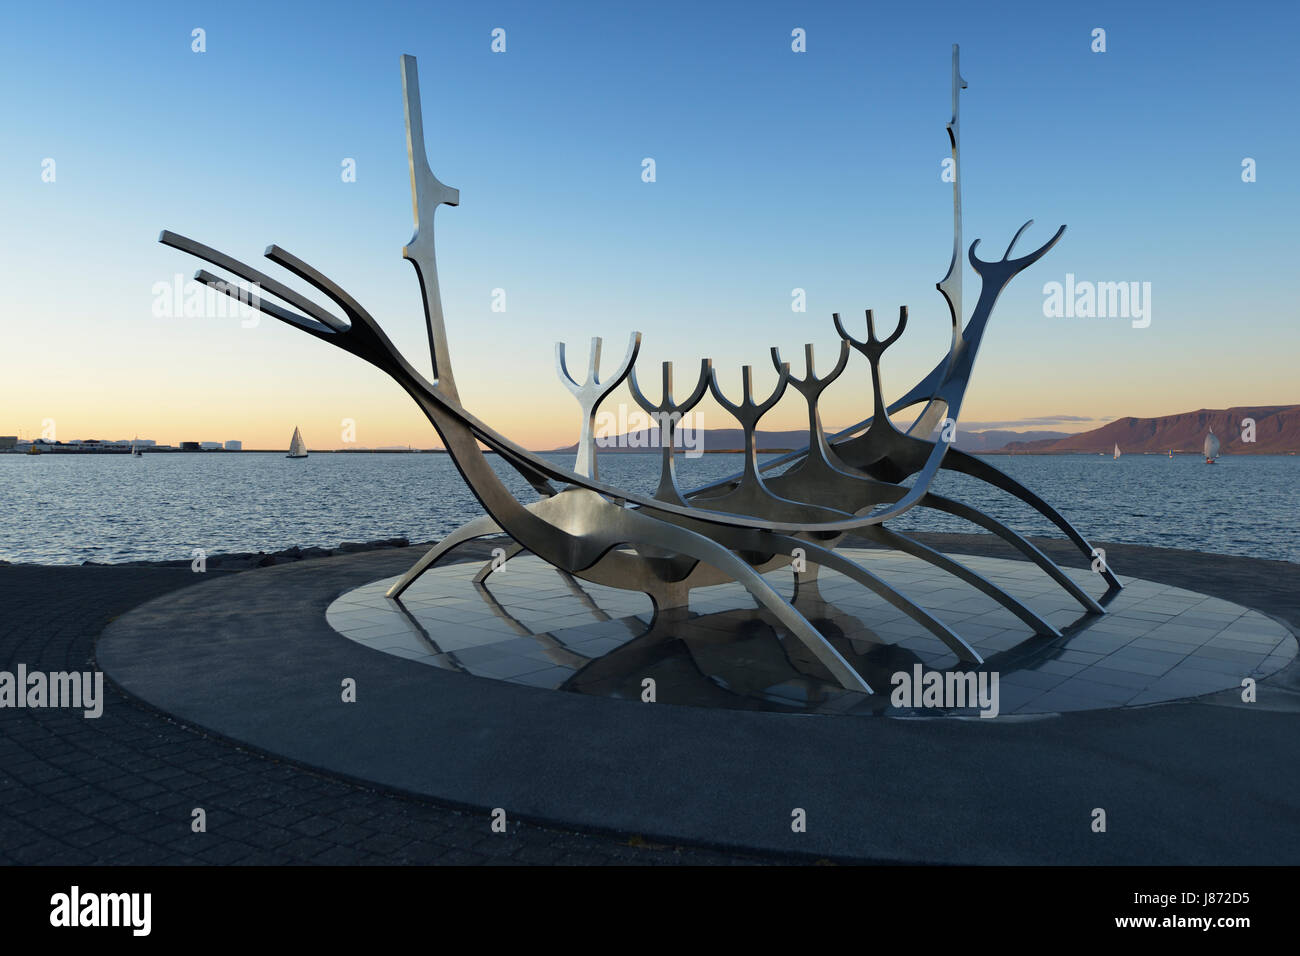 Solfar Sculpture on Saebraut, designed to resemble a Viking Ship, Reykjavik Waterfront, Iceland - Stock Image